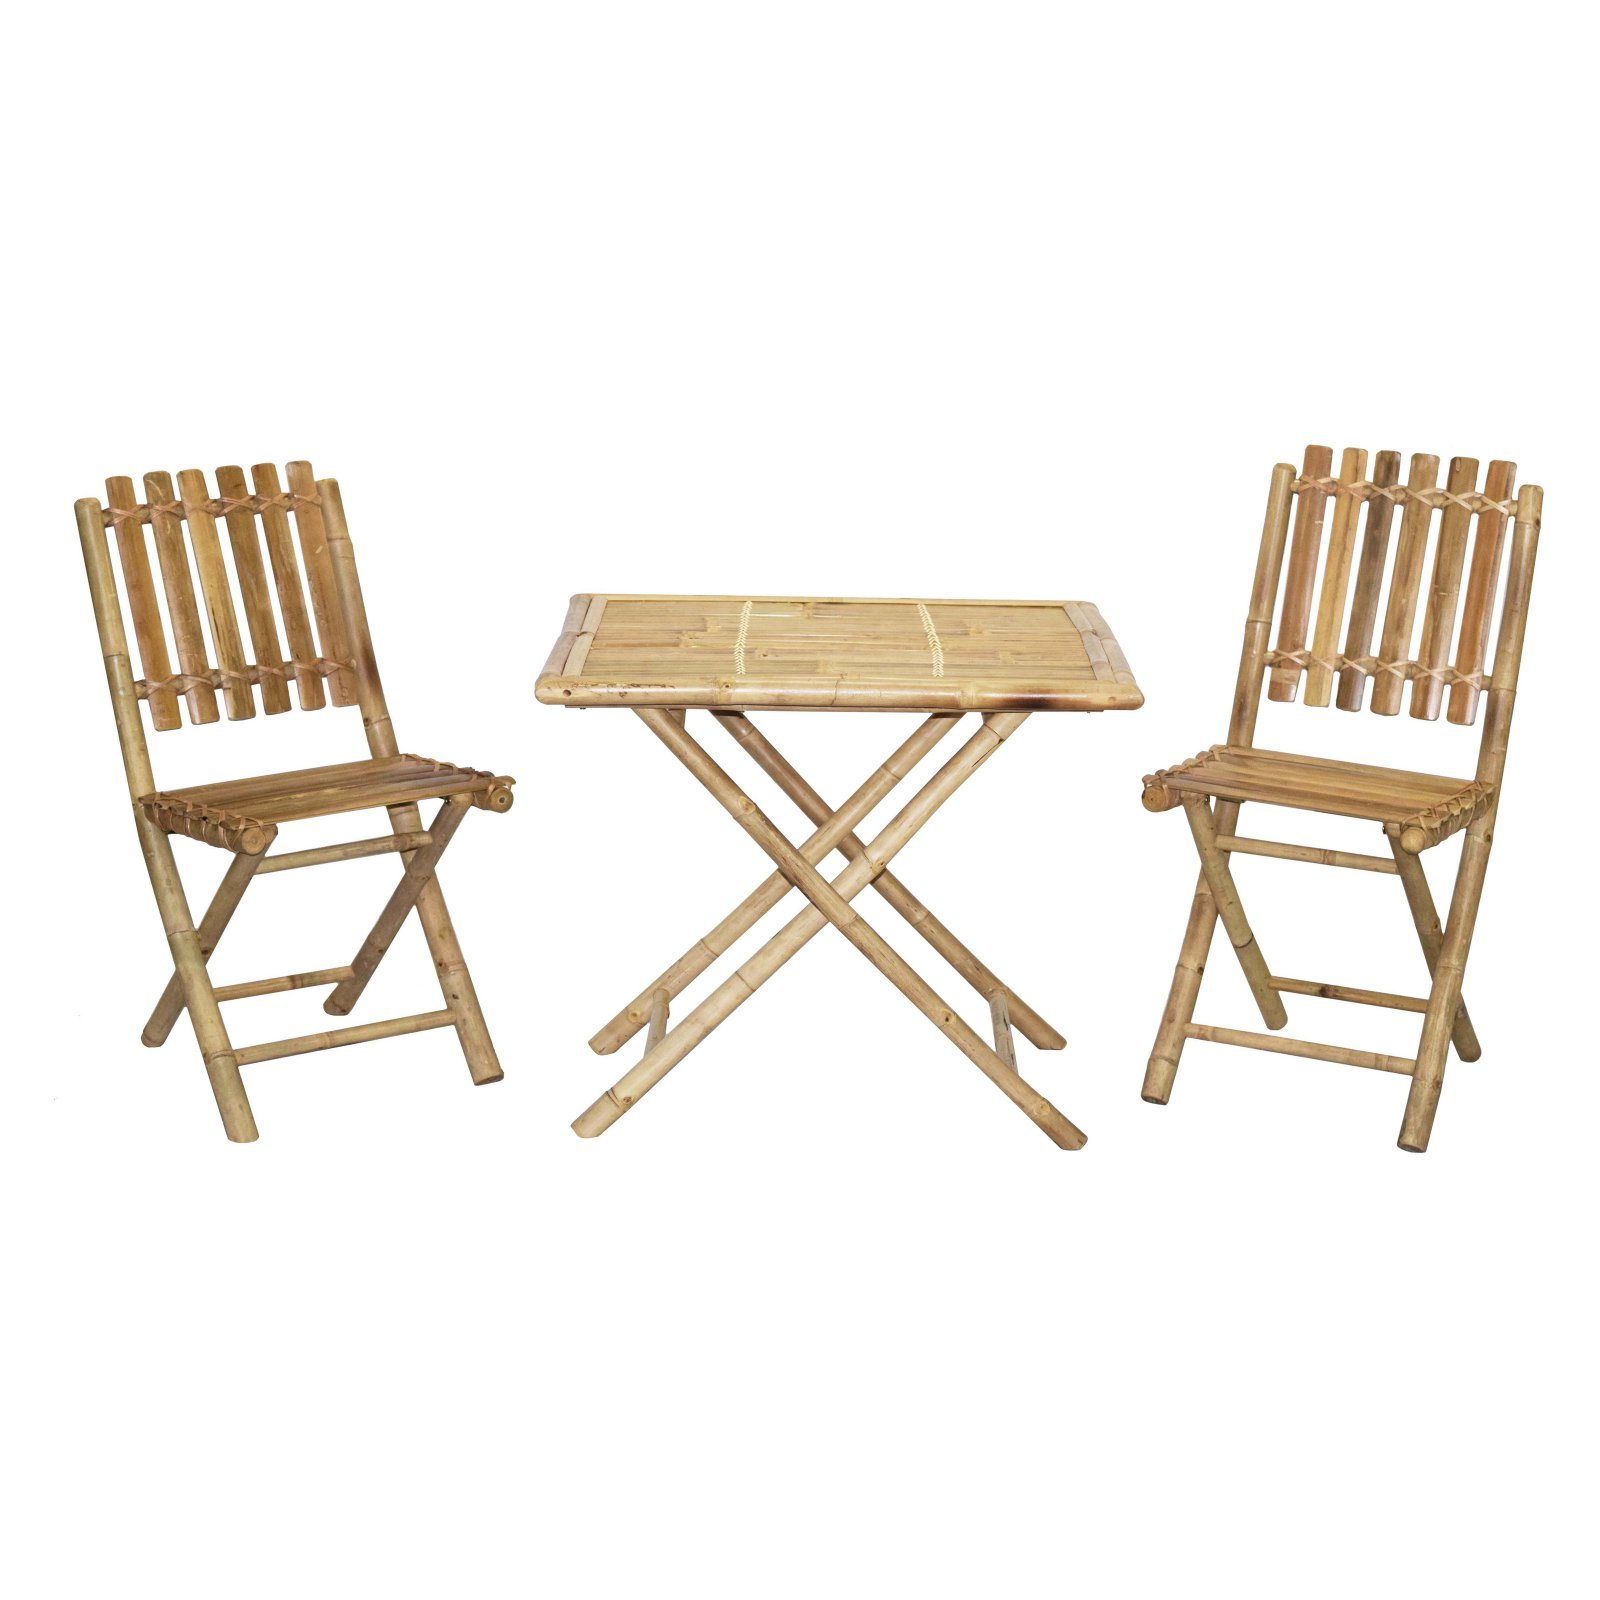 Bamboo54 Wood 3 Piece Square Outdoor Bistro Set with Slatted Chairs